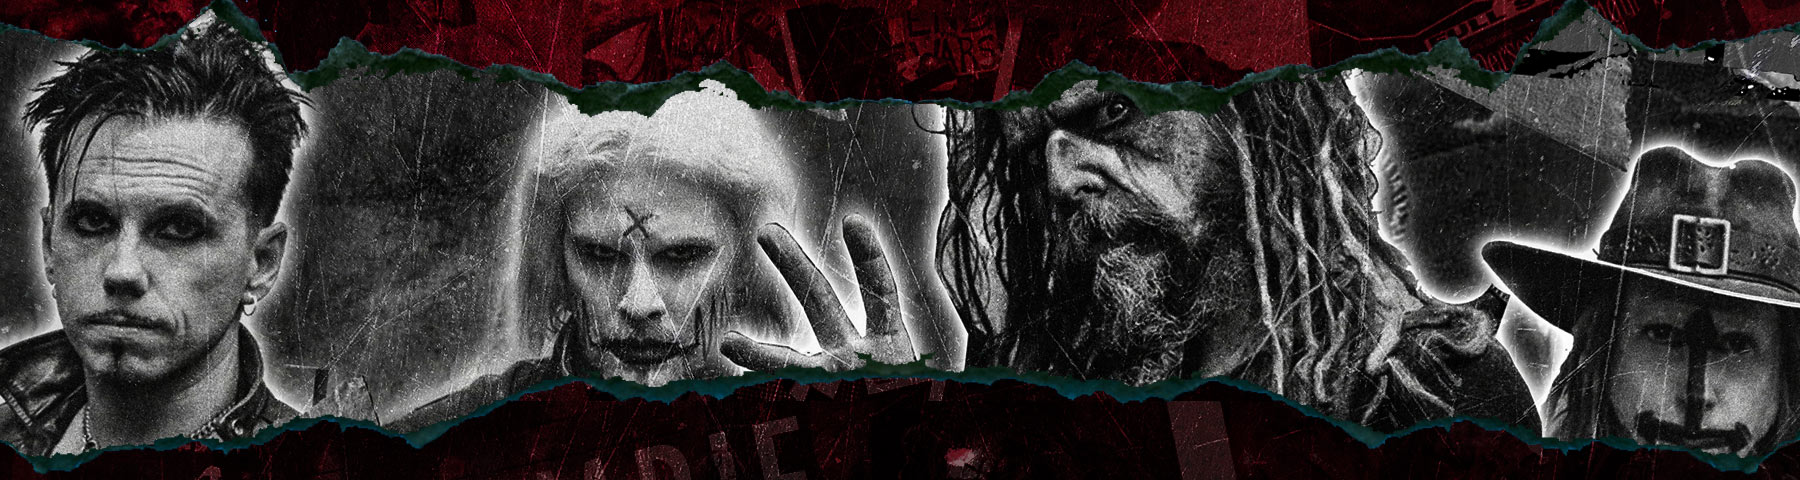 Rob Zombie Header July 2018